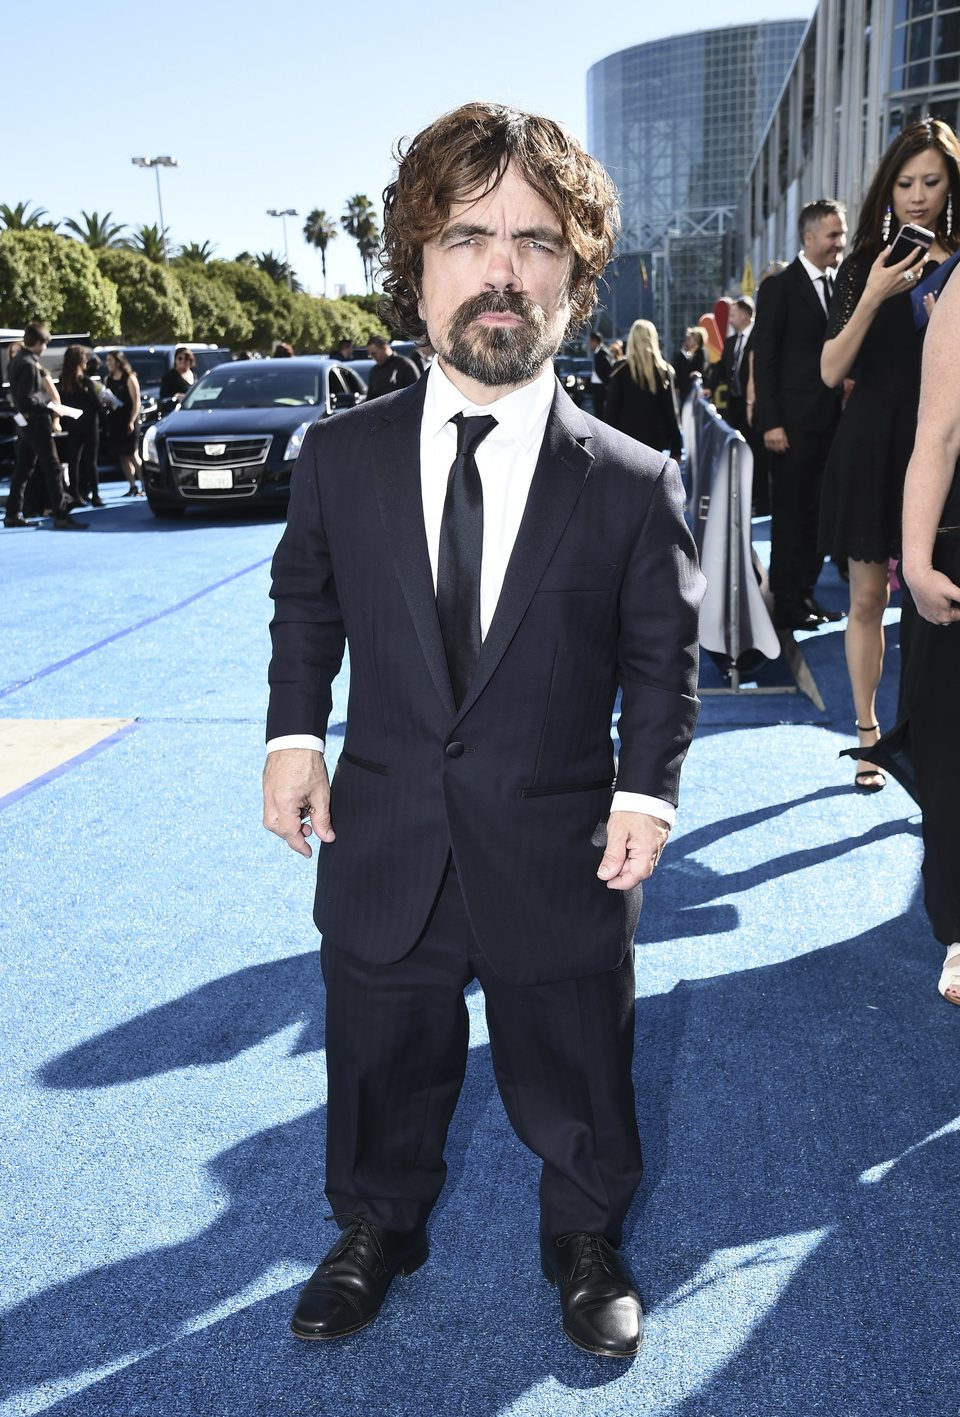 Peter Dinklage at the Emmys 2018 red carpet